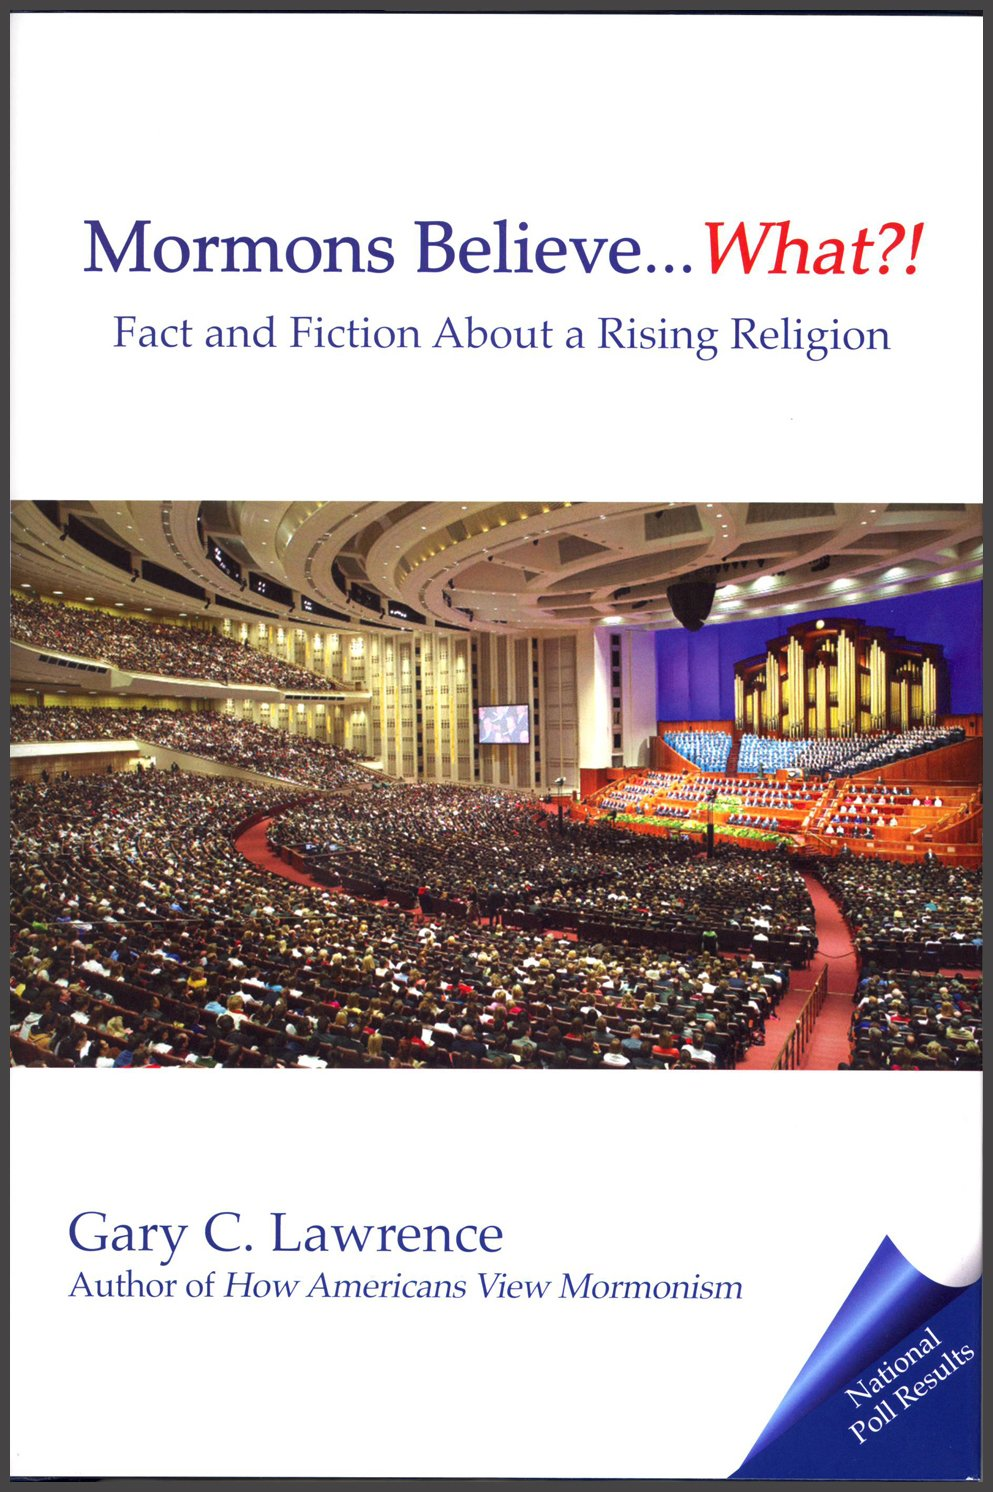 Review mormons believewhat fact and fiction about a rising what fact and fiction about a rising religion biocorpaavc Choice Image